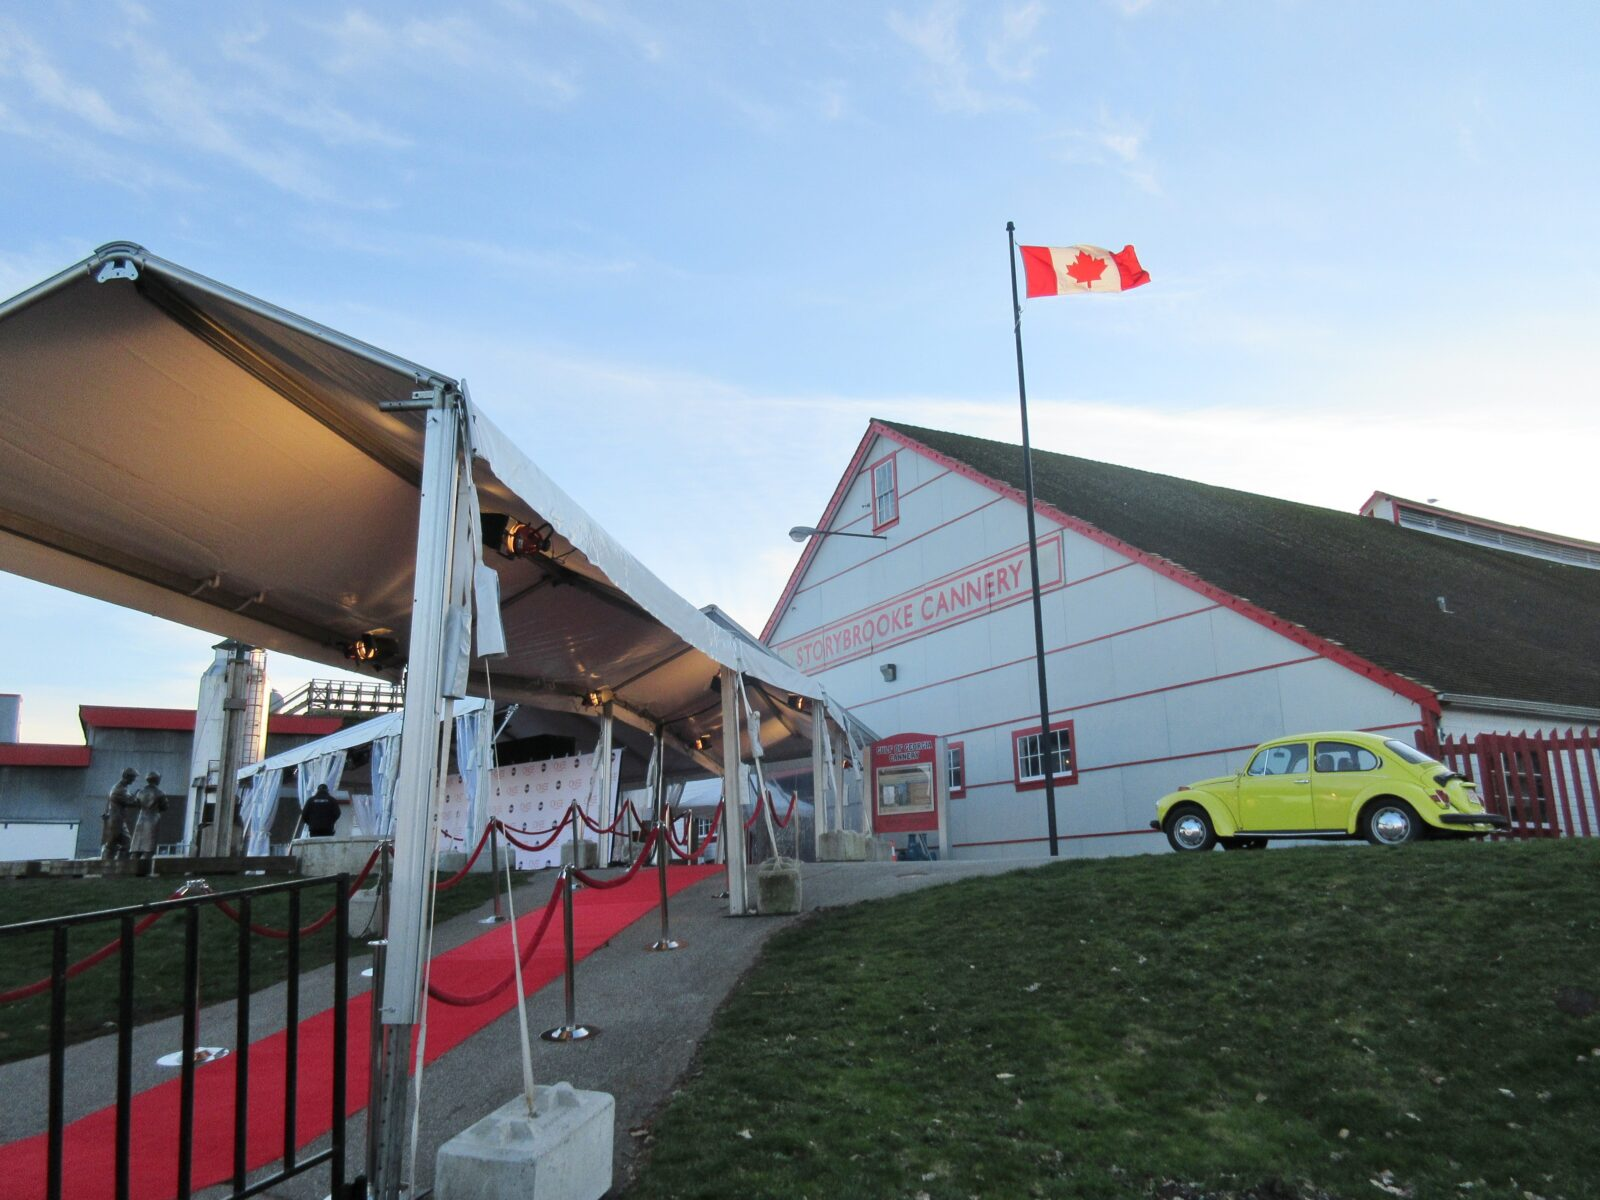 Red carpet set up in front of the cannery